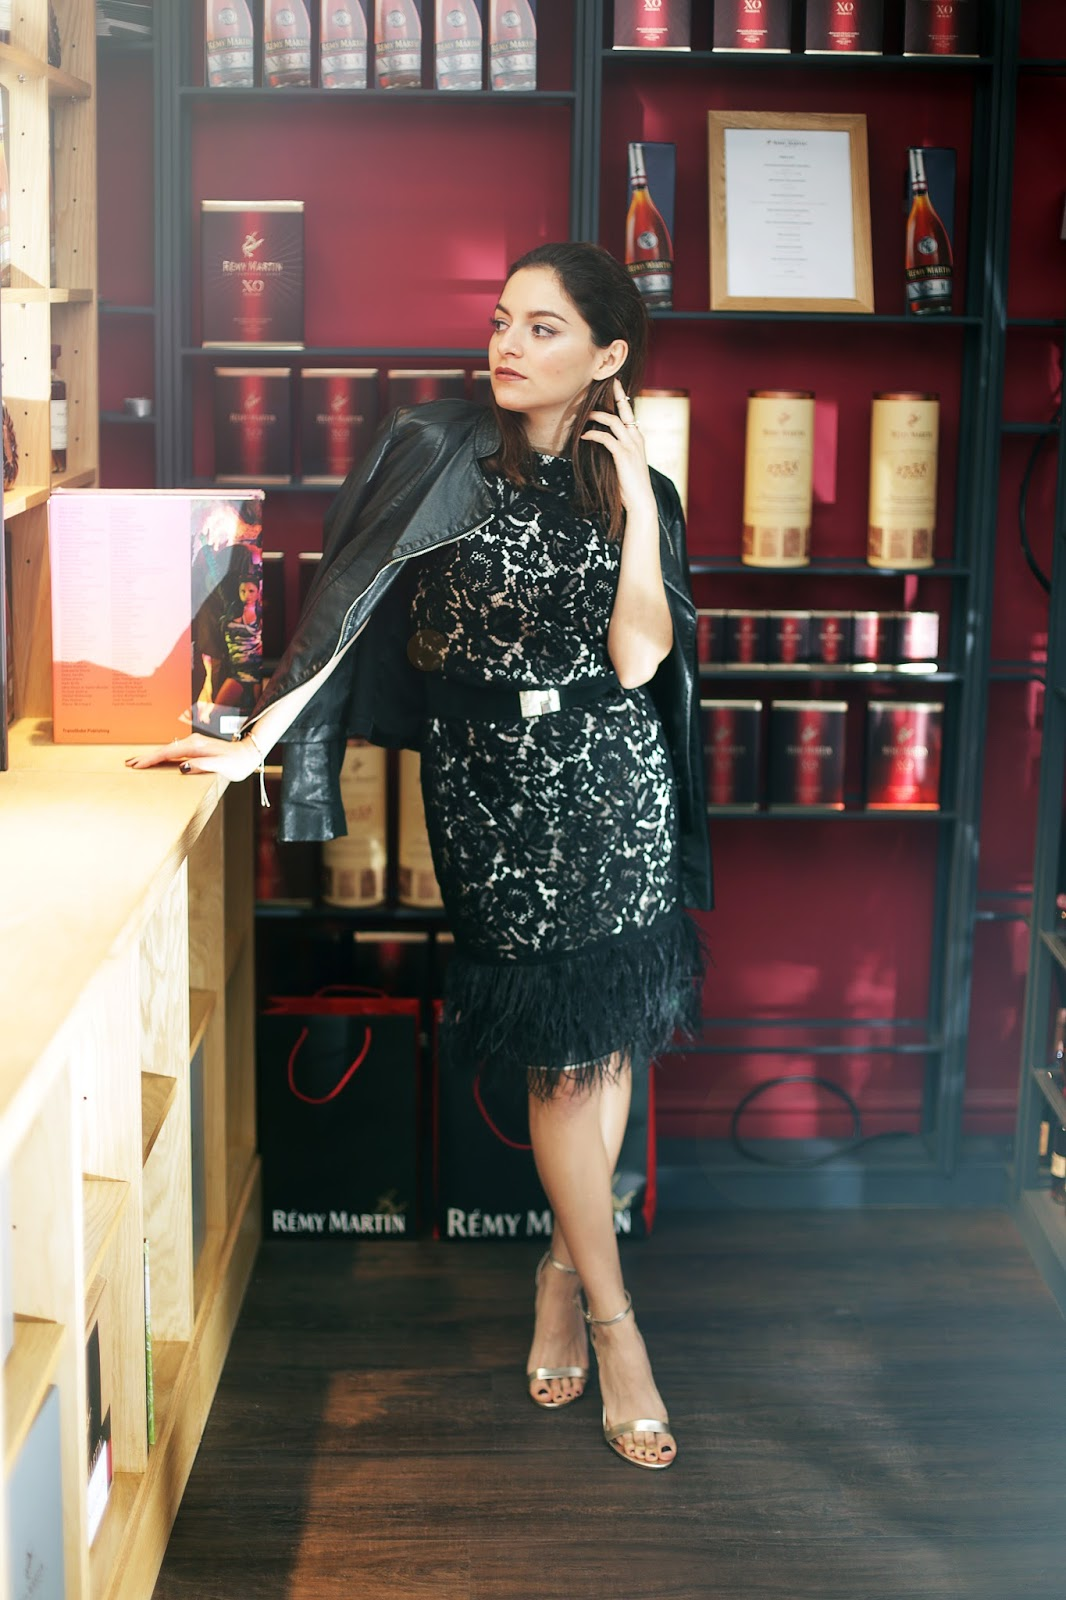 Whitney's Wonderland UK Luxury Fashion Blogger wears Kaliko lace feather dress for the Party Season Dress Editorial at La Maison Remy Martin